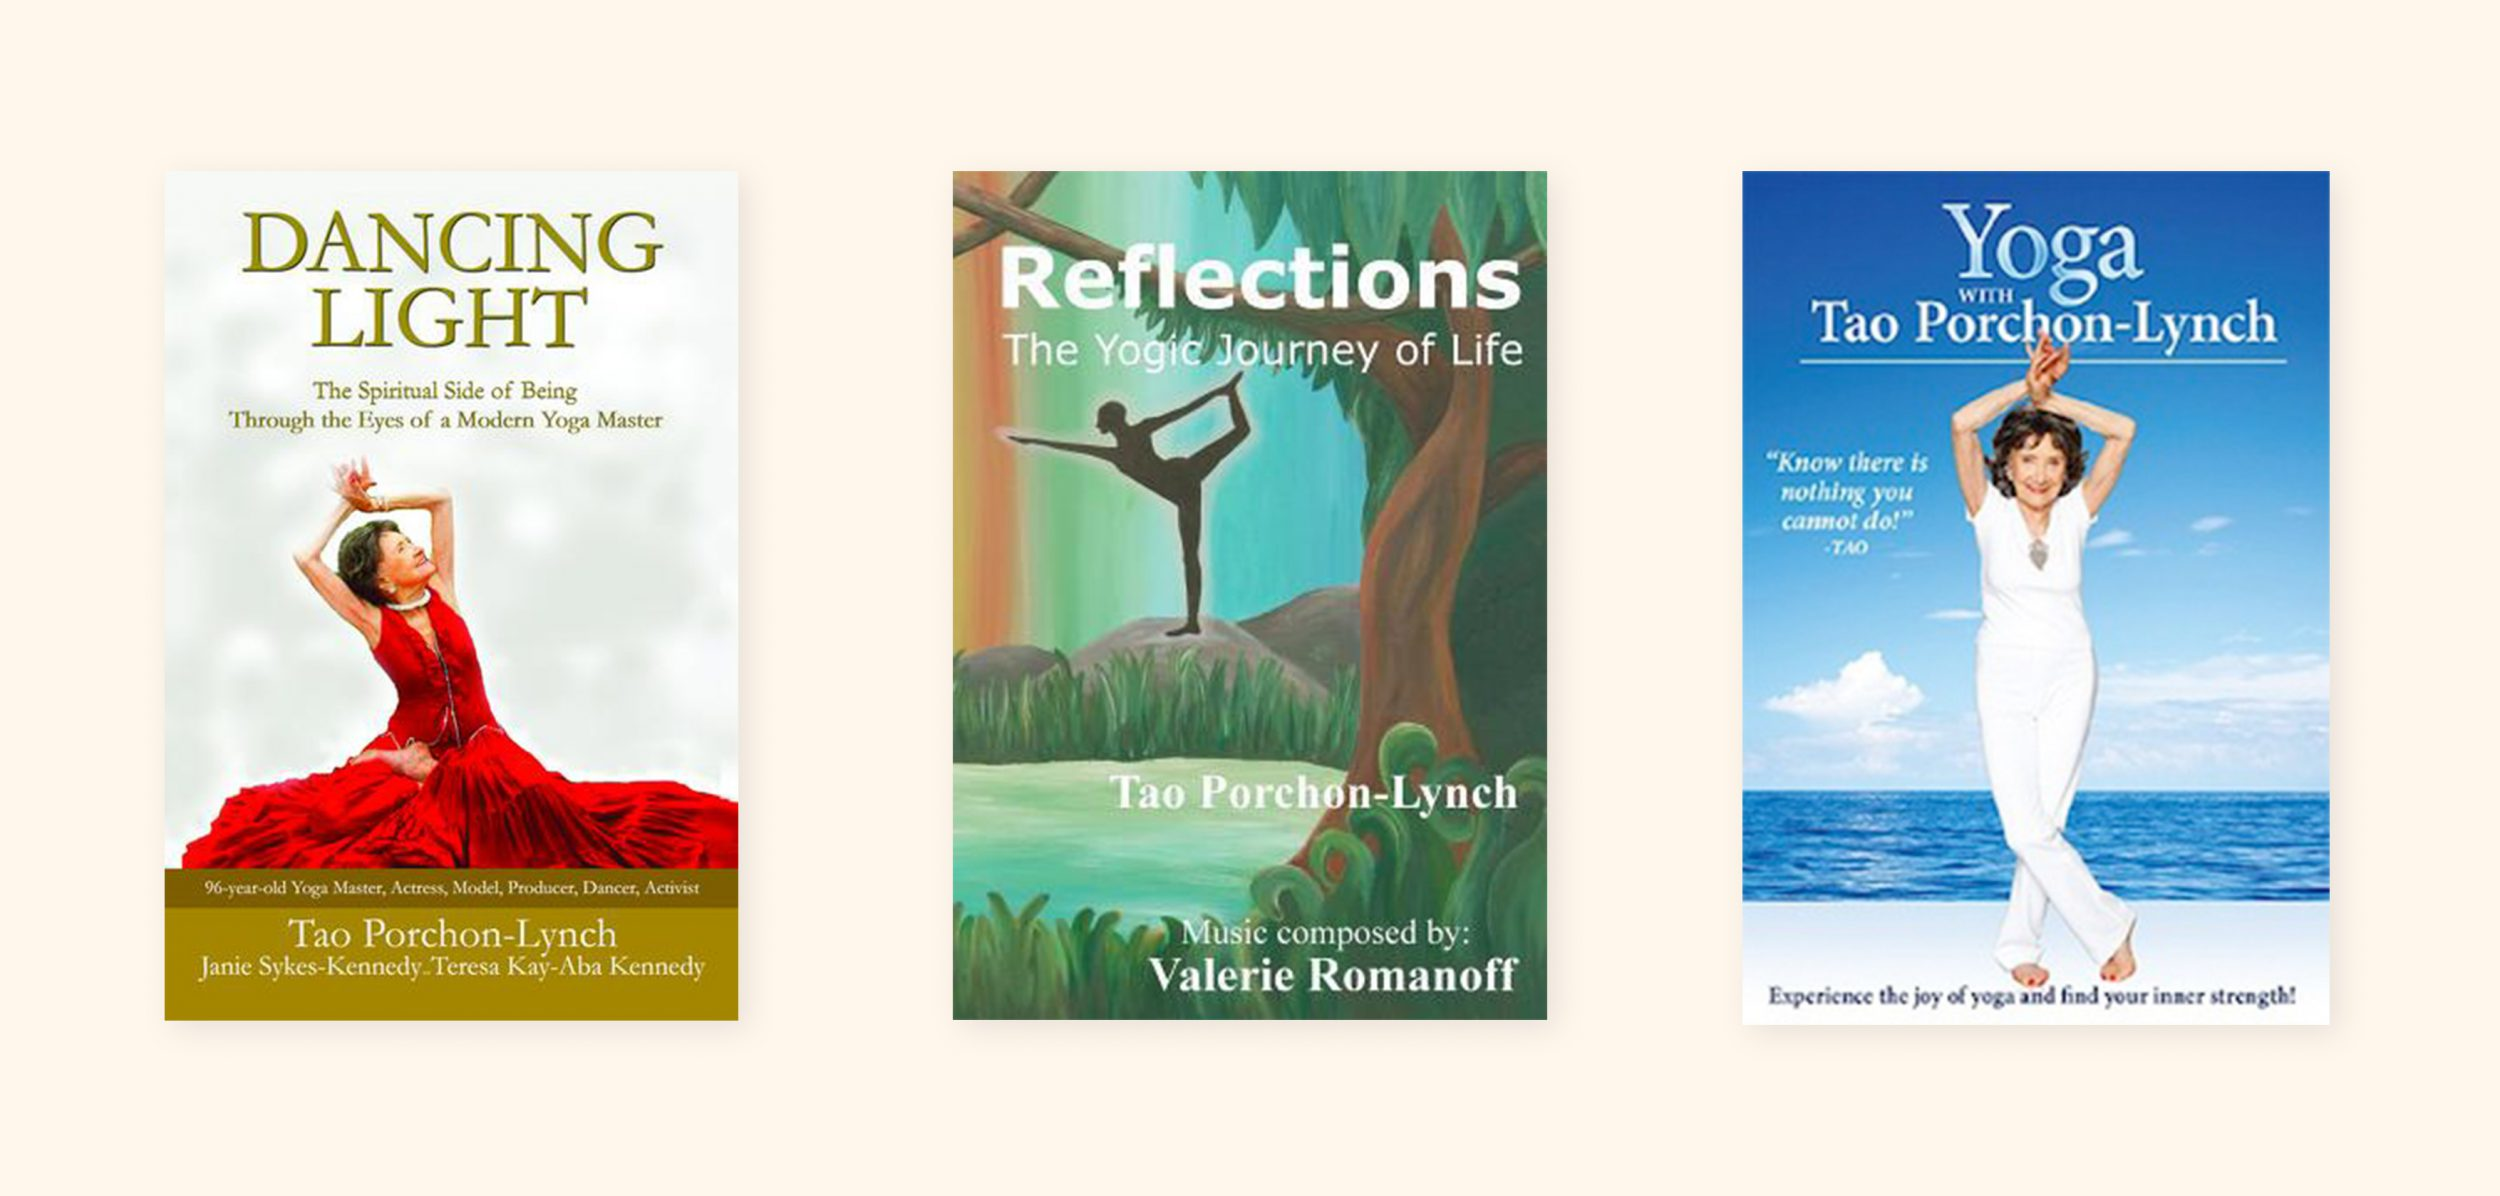 Left to right: Dancing Light: The Spiritual Side of Being Through the Eyes of a Modern Yoga Master, Reflections. The Yogic Journey of Life, Second Edition, Yoga with Tao Porchon-Lynch, the World's Oldest Yoga Teacher